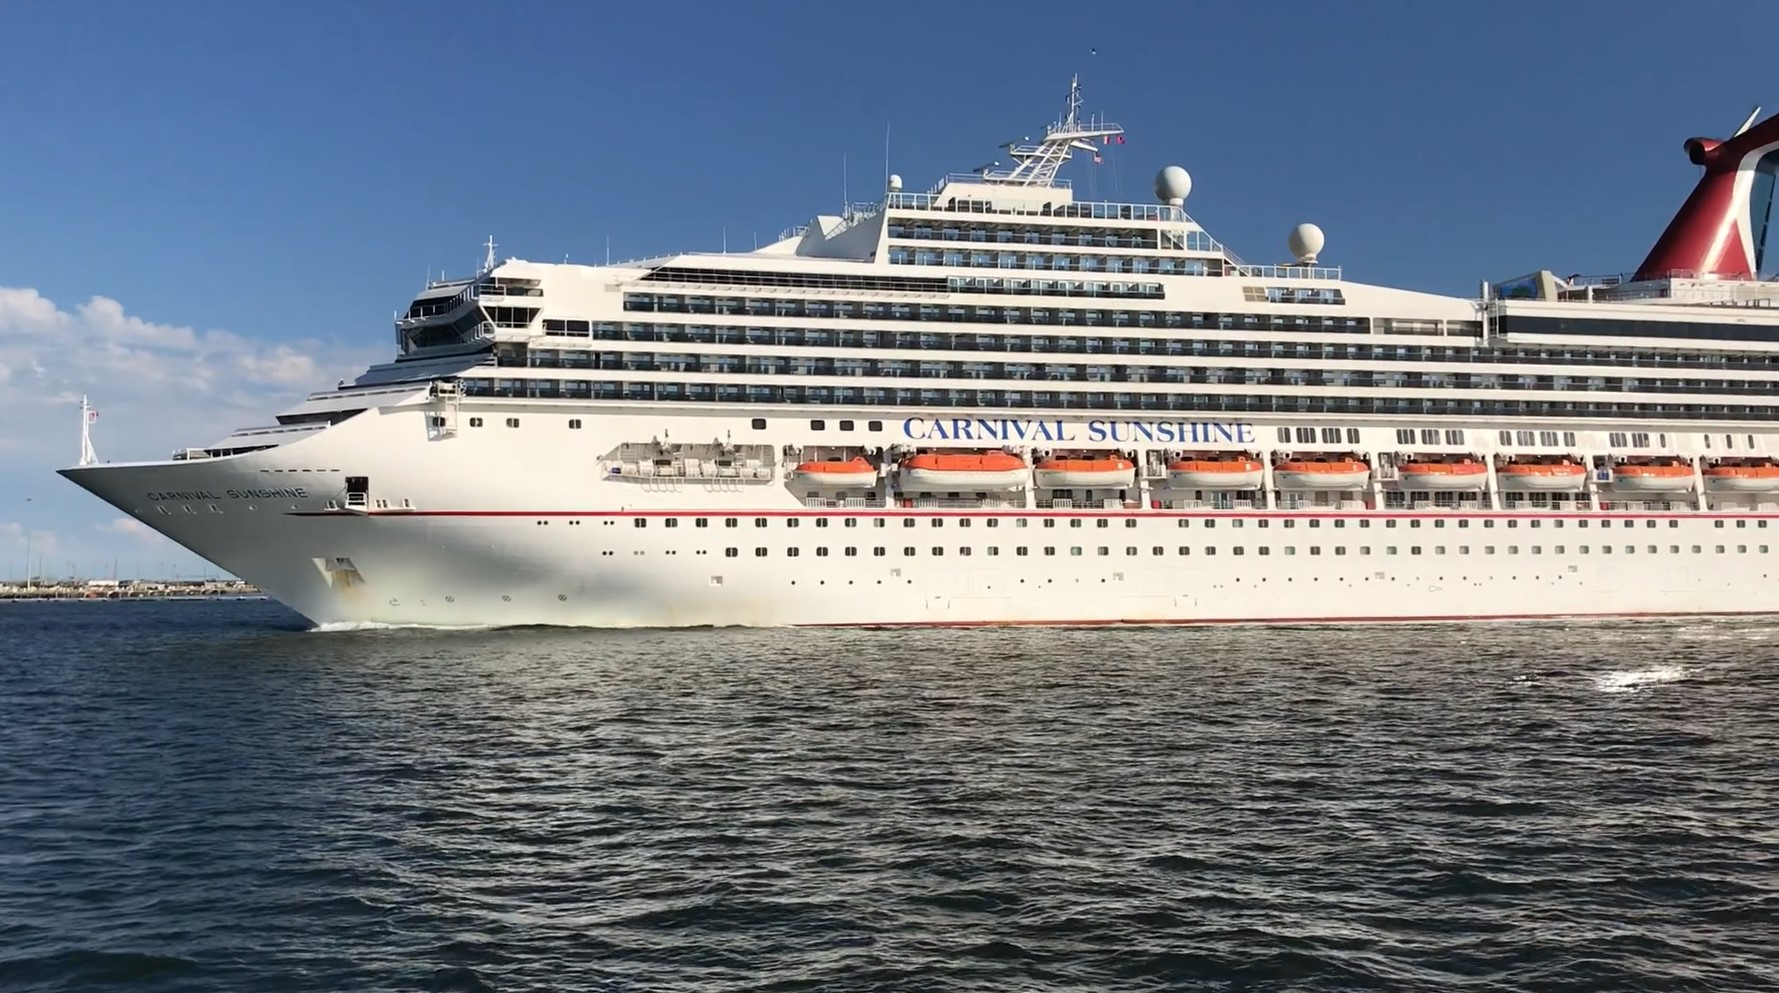 36. 7 Carnival Sunshine a Norfolk